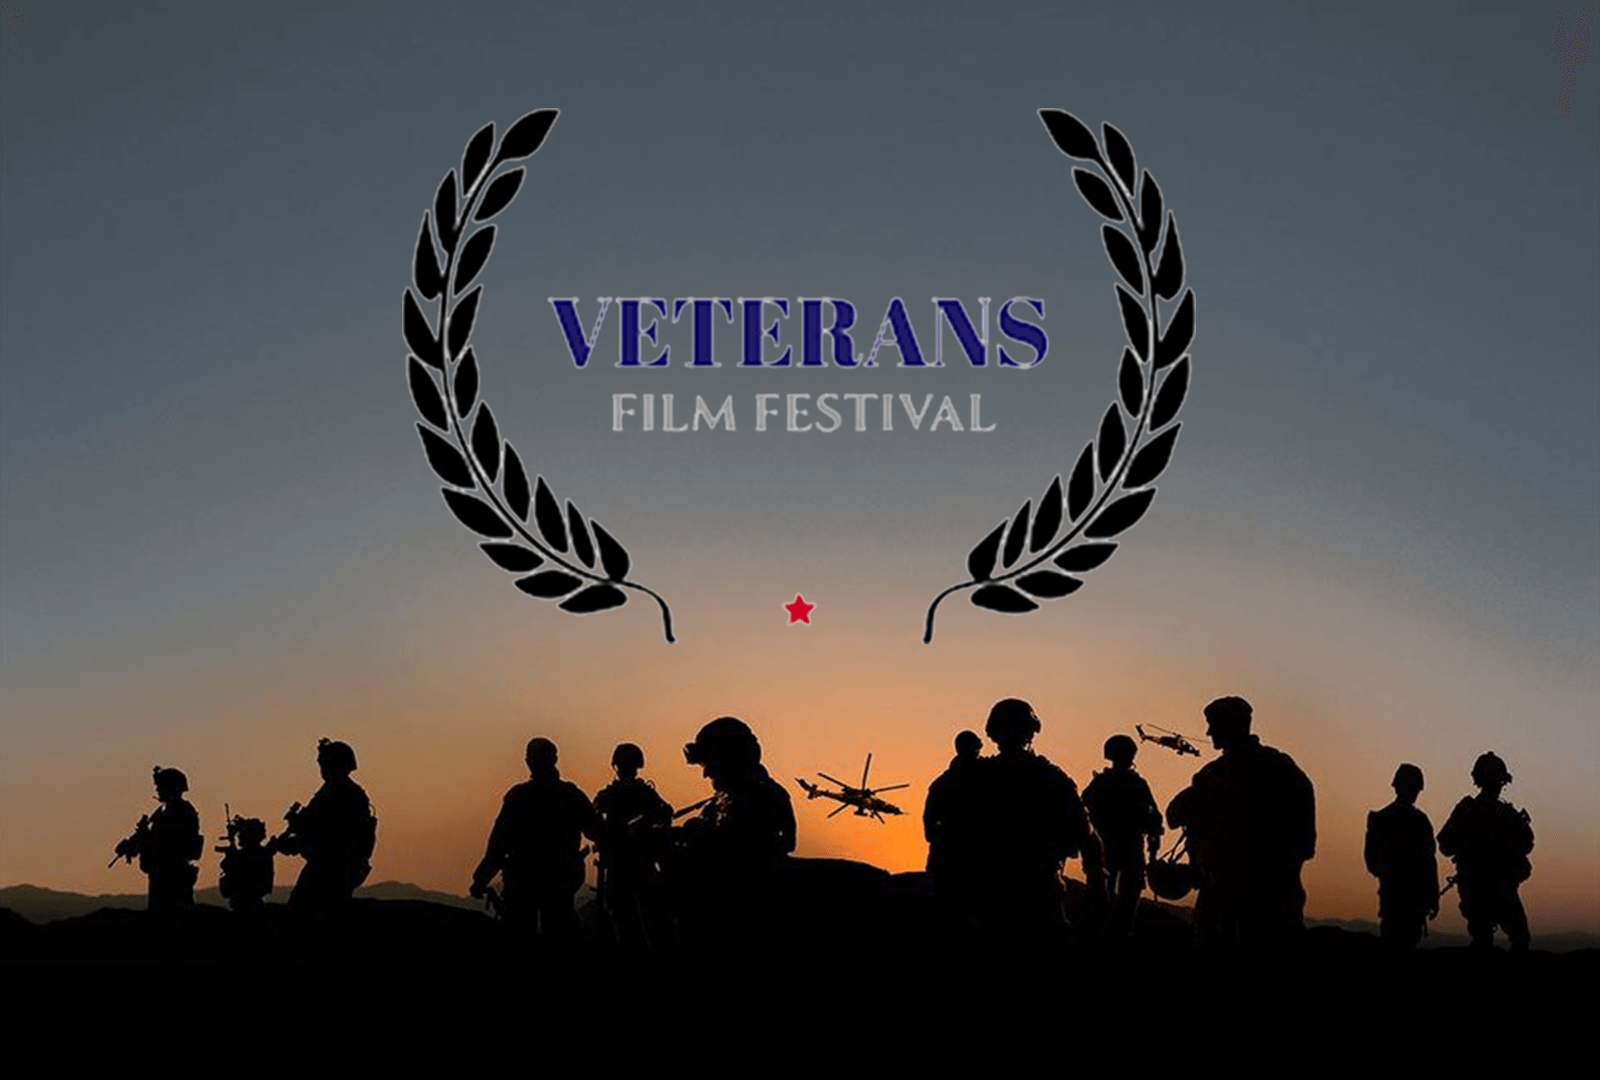 Veterans Film Festival Virtual Event - In Between The White Space